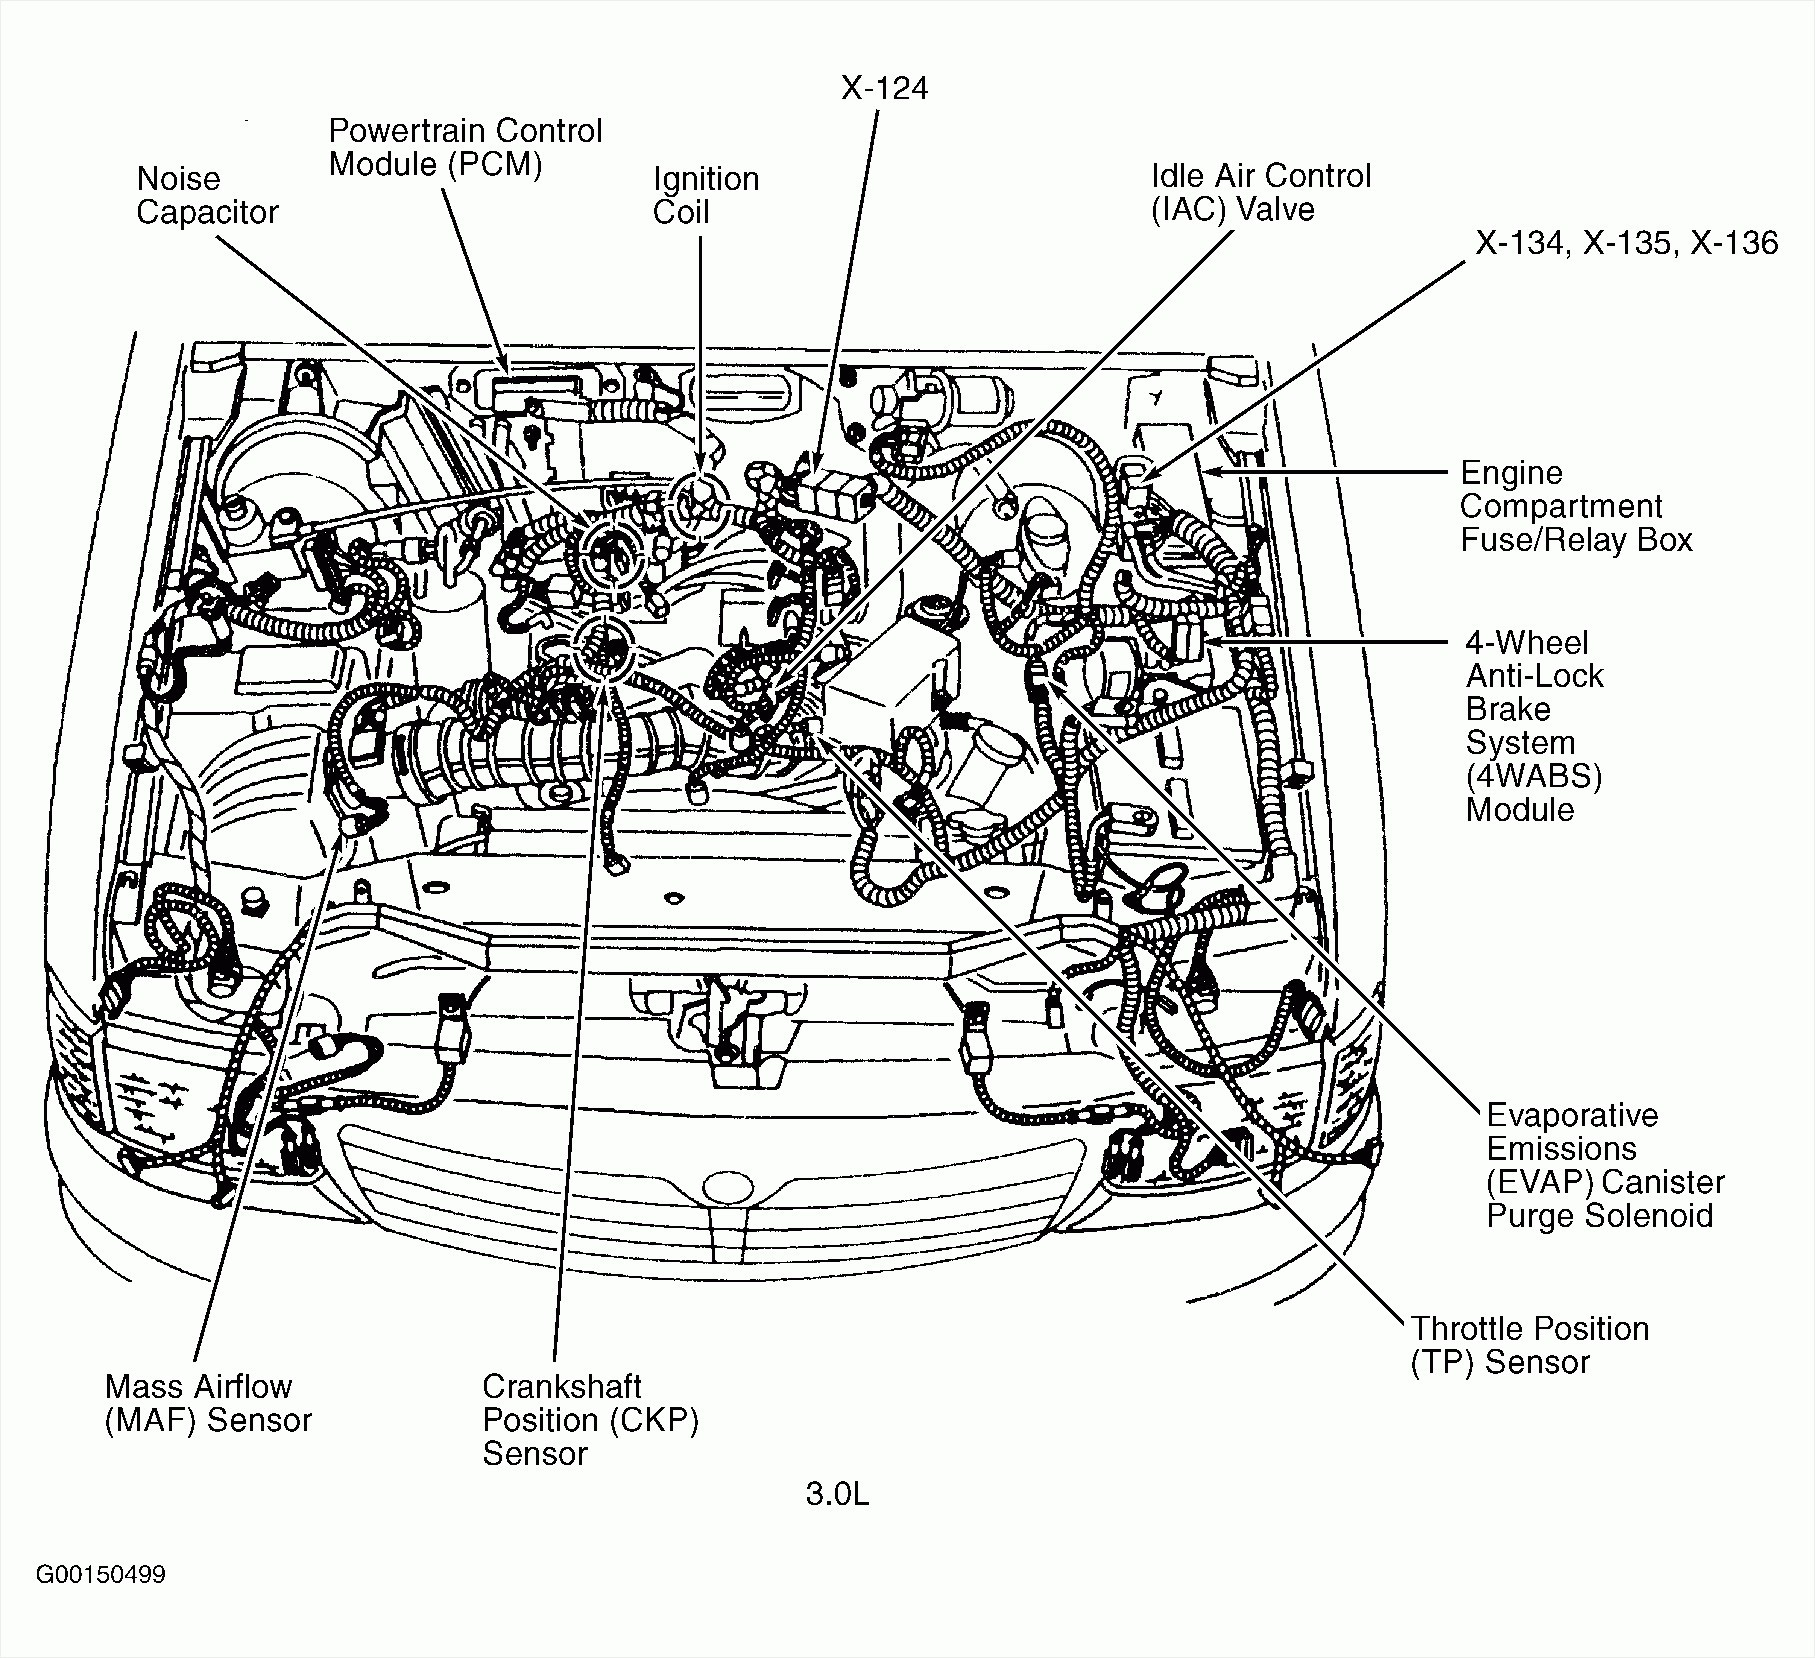 2002 pontiac 3 4 engine cooling diagram 17 18 fearless wonder de \u20222004 pontiac 3 4 engine diagram 17 18 fearless wonder de u2022 rh 17 18 fearless wonder de 4 3l v6 engine diagram chevy v6 engine diagram